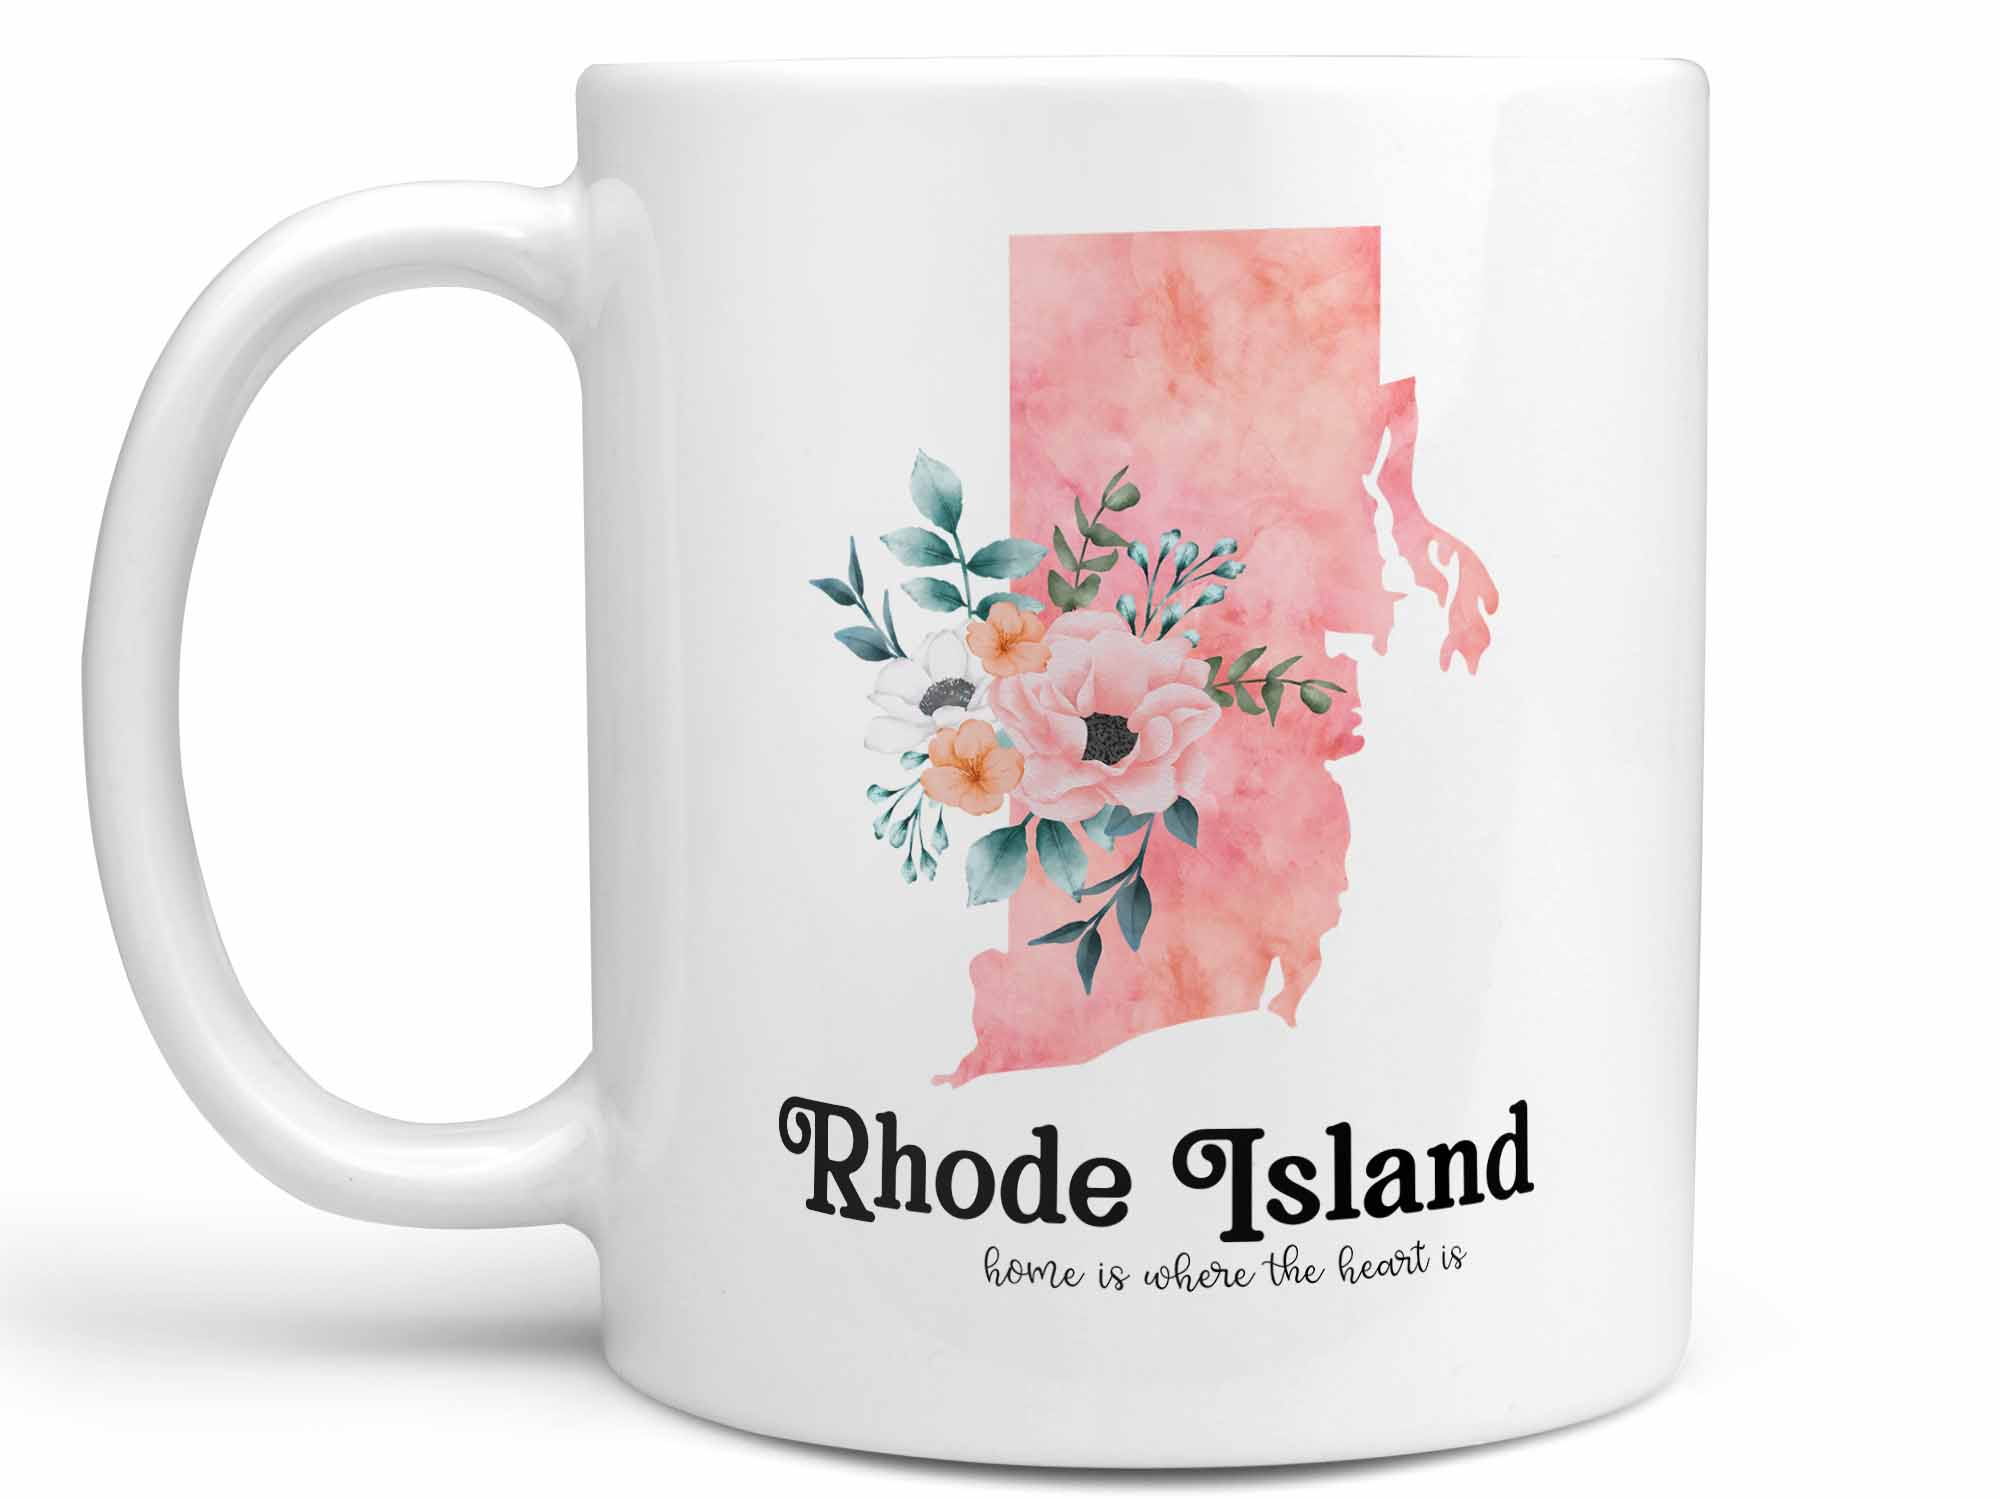 Rhode Island Home Coffee Mug,Coffee Mugs Never Lie,Coffee Mug